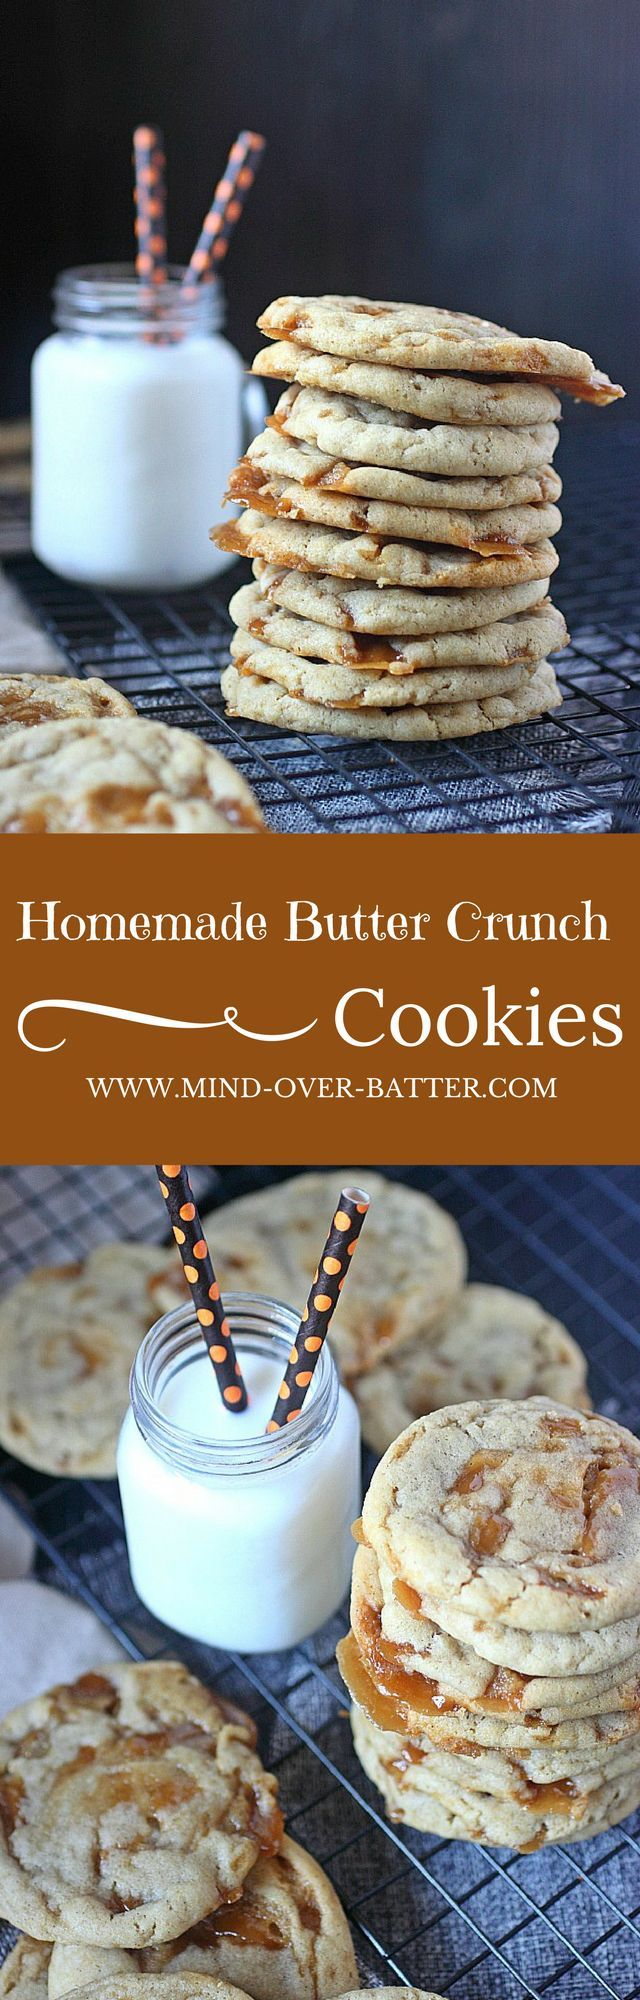 Homemade Butter Crunch Cookies -- www.mind-over-batter.com